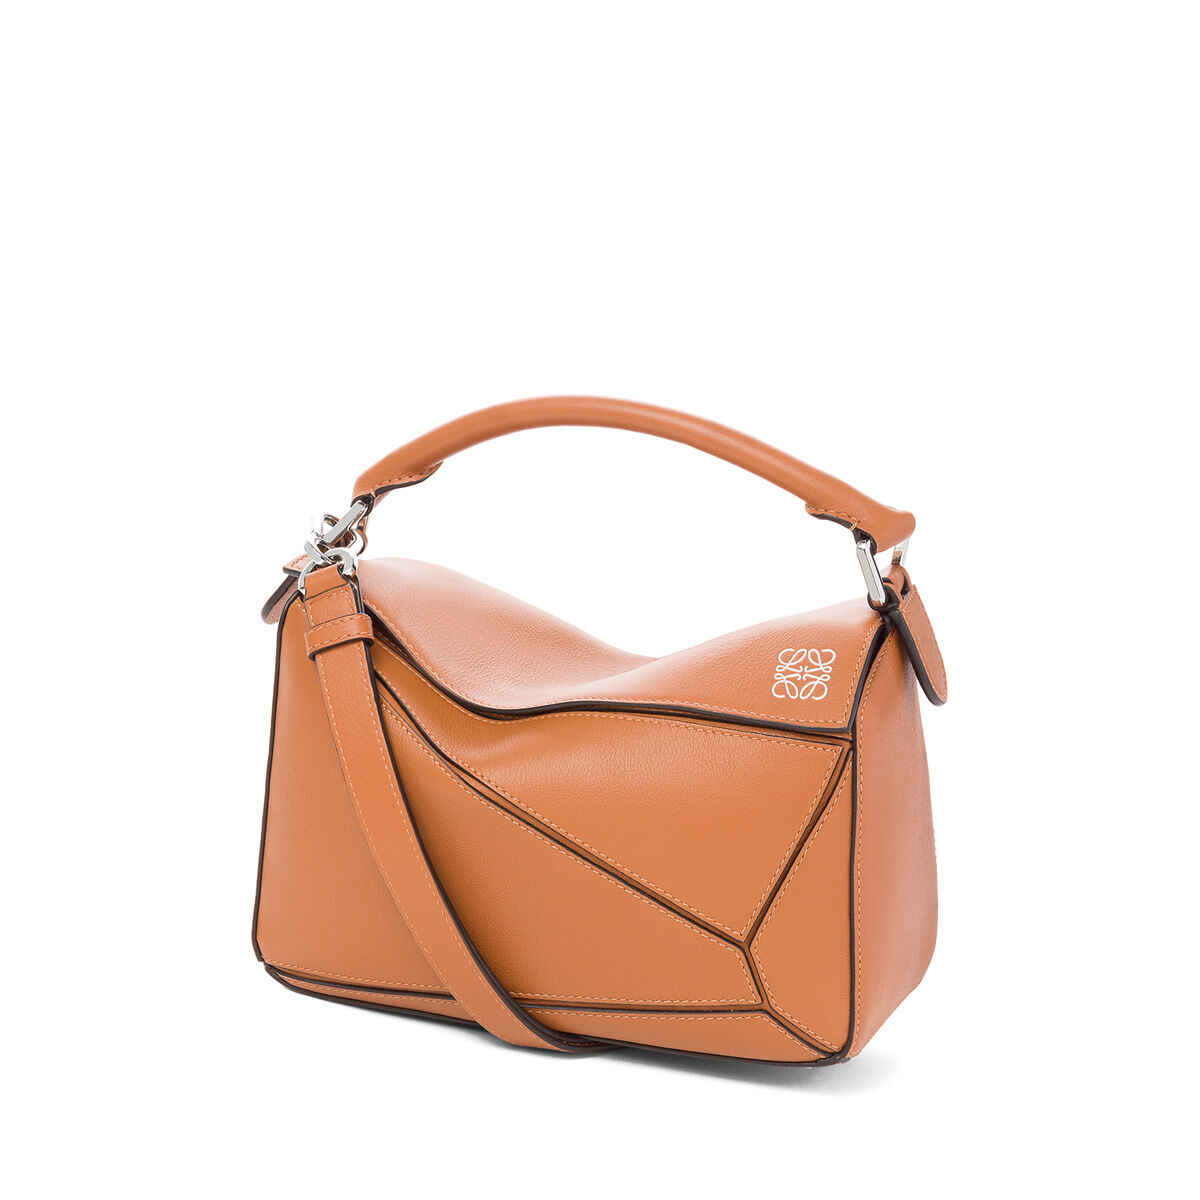 Loewe Bags Women Collection Puzzle For 9HWED2I